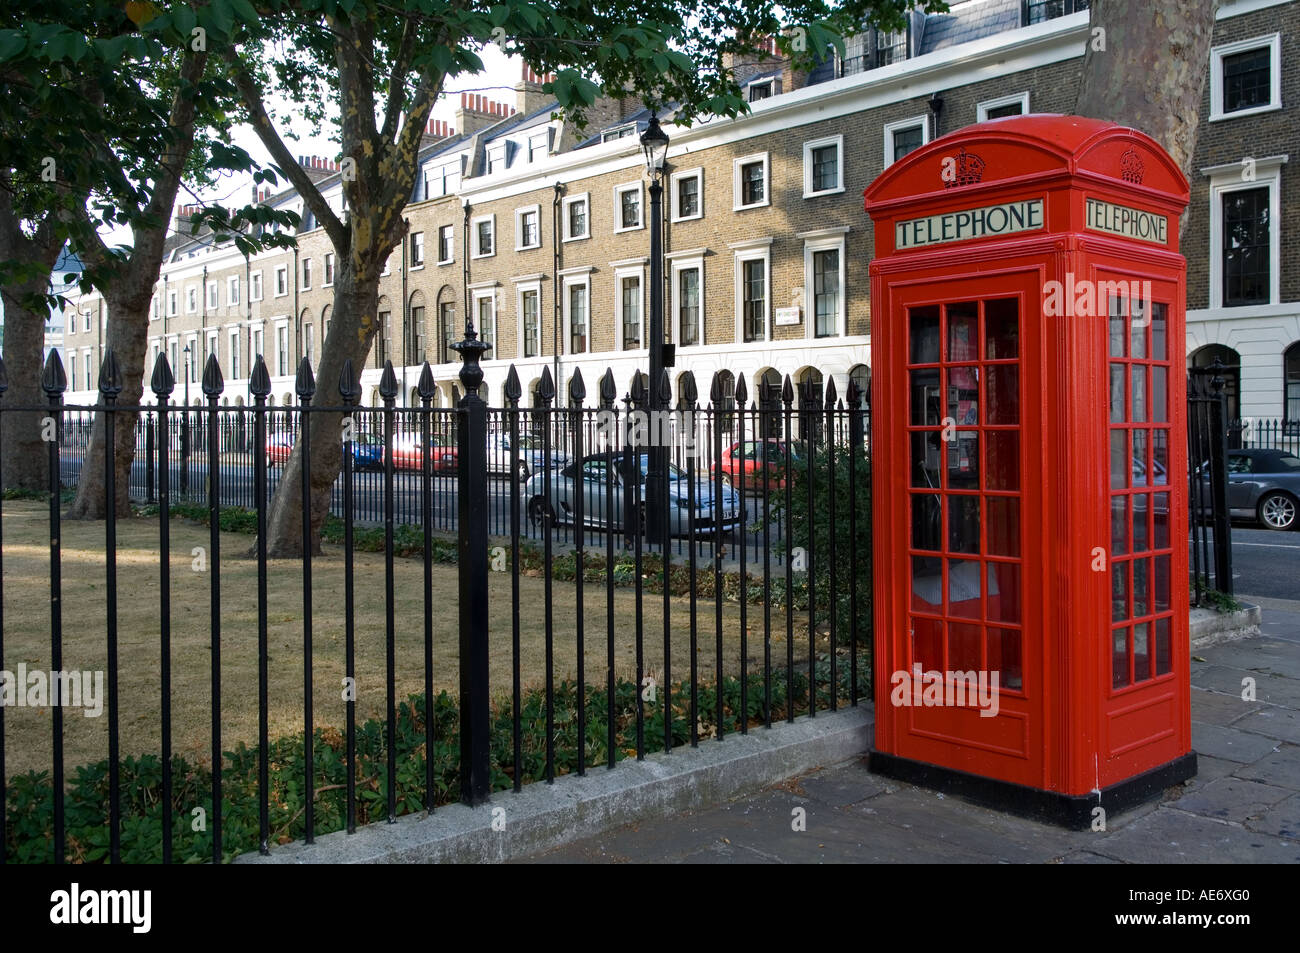 London garden square with red telephone kiosk and black iron railings - Stock Image